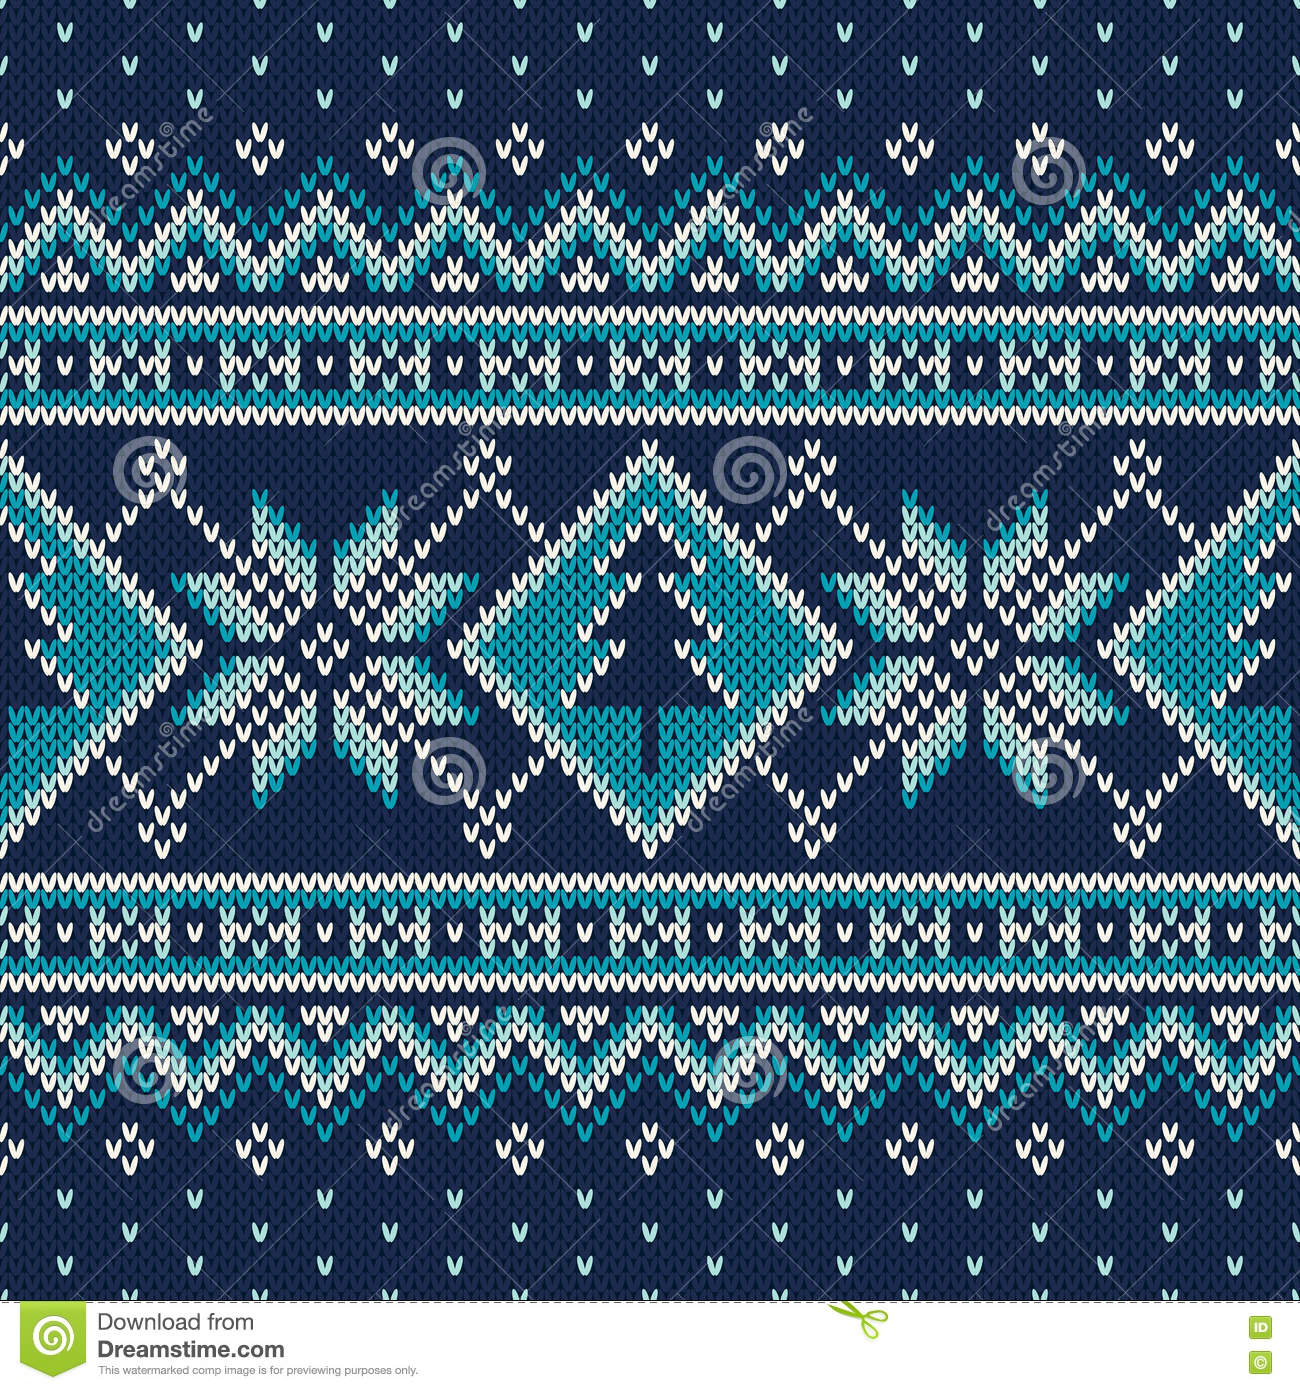 winter holiday fair isle knitted pattern with snowflakes